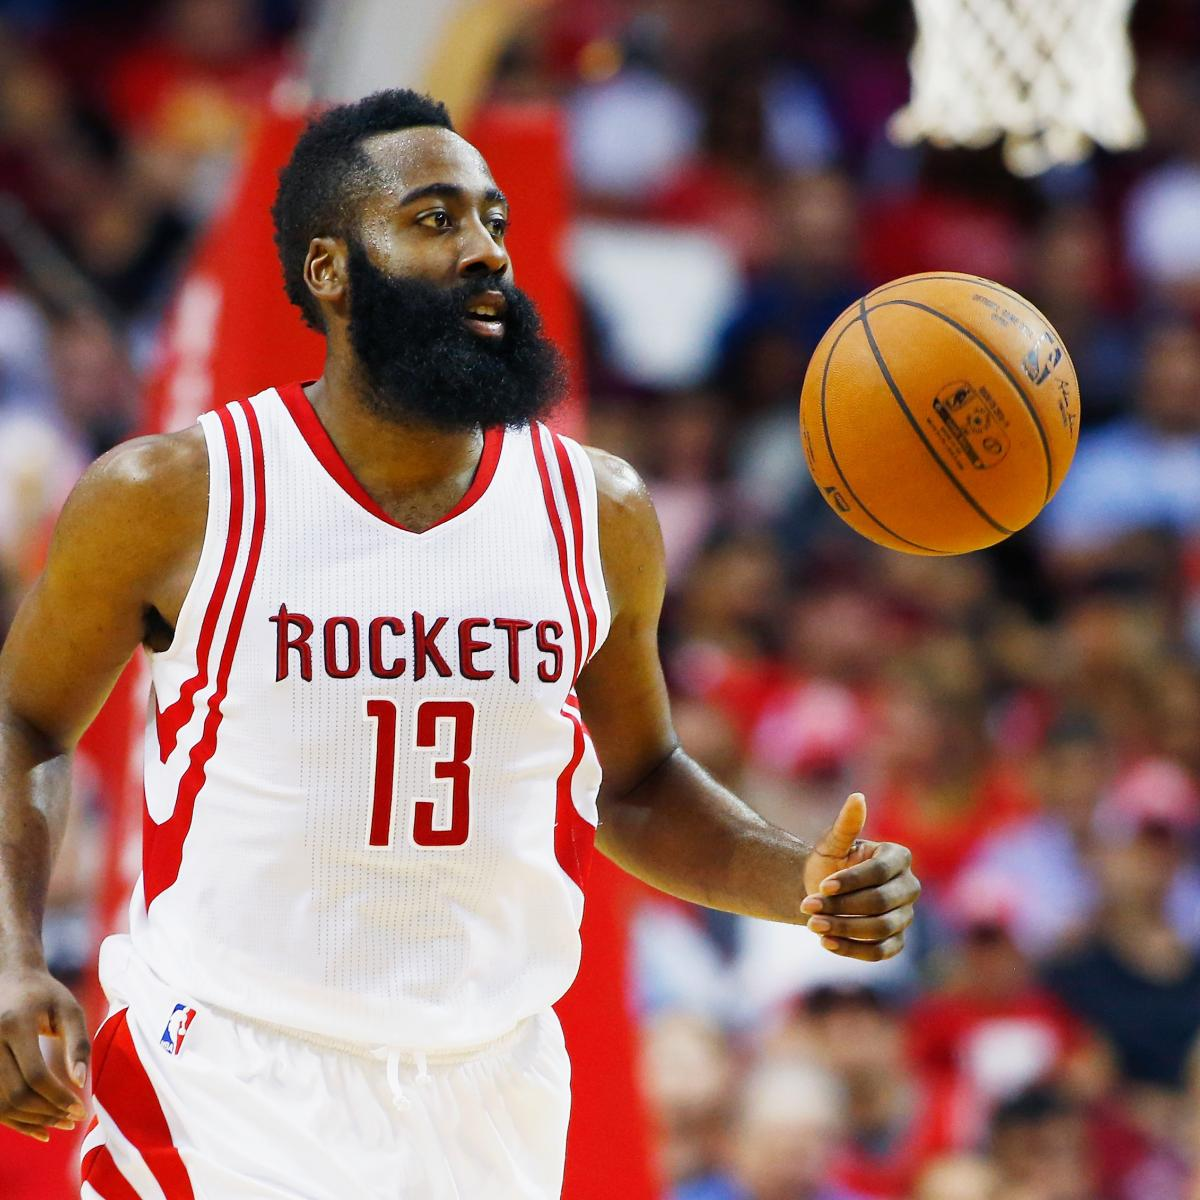 Los Angeles Clippers Vs. Houston Rockets: Live Score